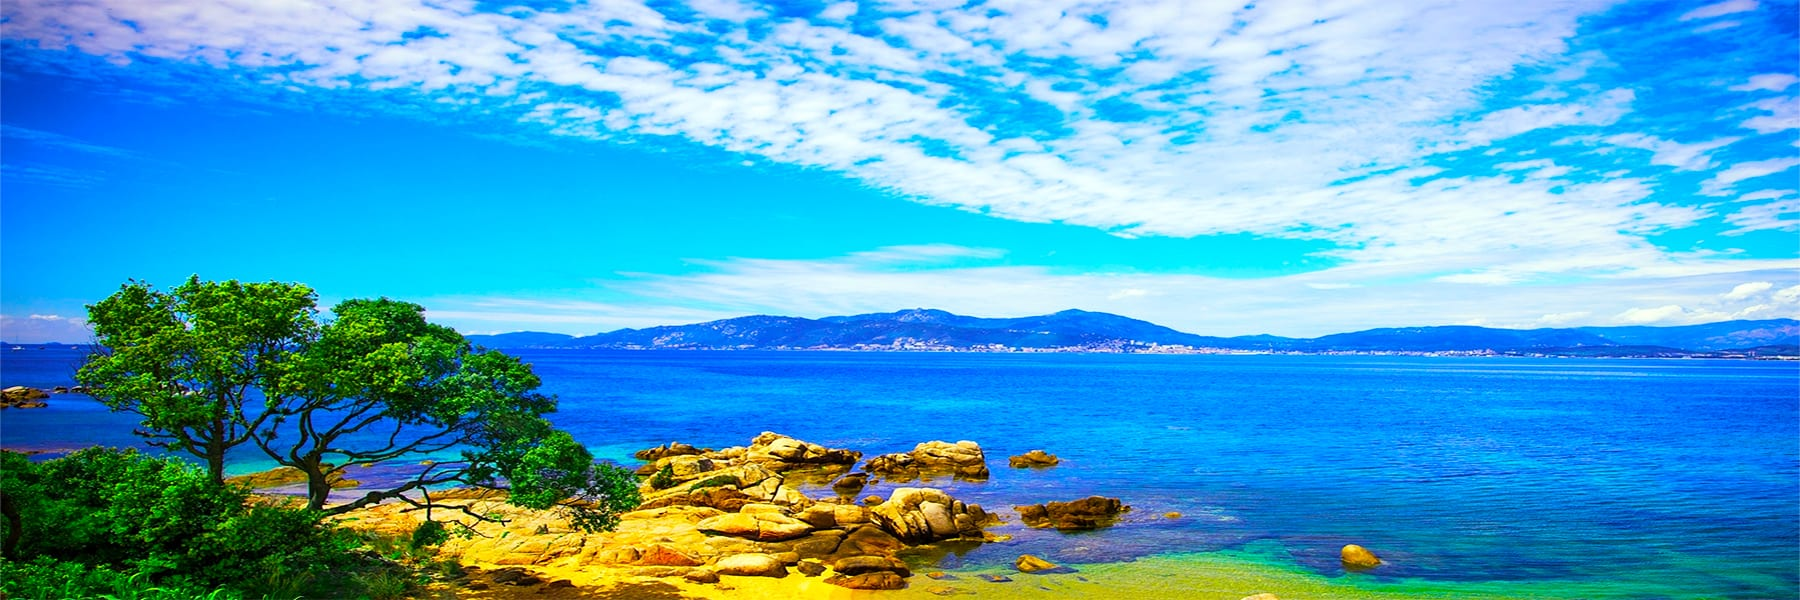 Tour Corsica with Columbus World Travel